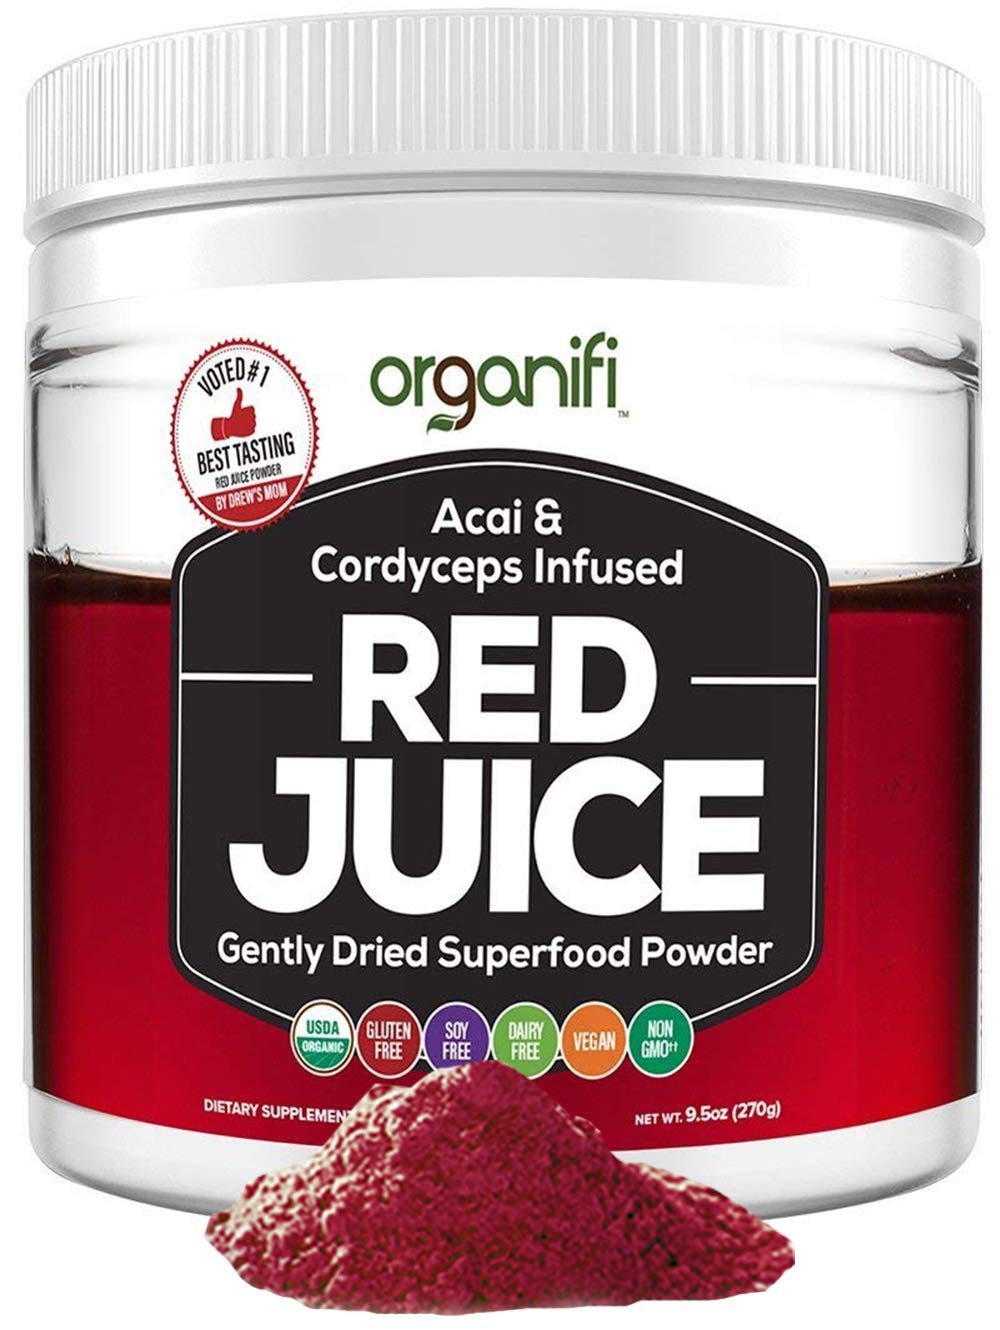 Organifi: Red Juice- Organic Superfood Supplement Powder - 30 Day Supply - USDA Certified Organic, Boosts Metabolism, and Reverses The Signs of Aging by Organifi